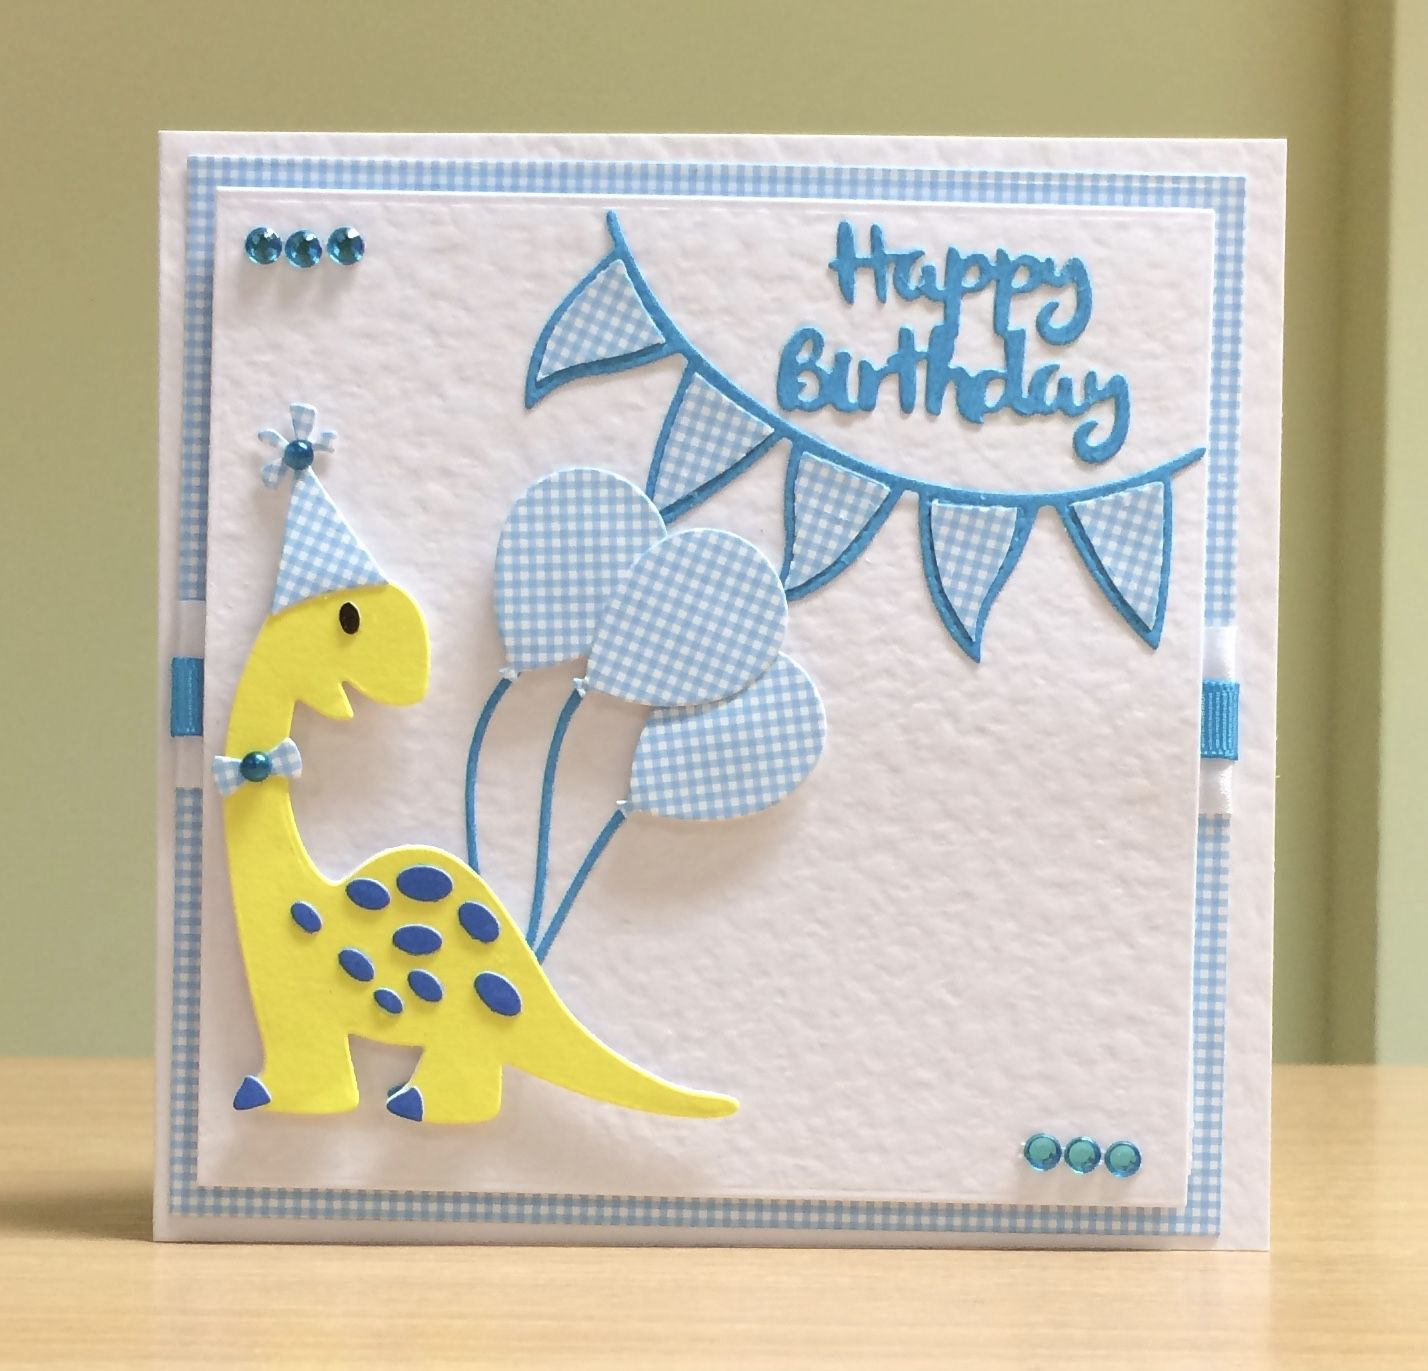 Birthday Card Handmade Marianne Dinosaur Die For More Of My Cards Please Visit Craftycardst First Birthday Cards 1st Birthday Cards Birthday Cards For Boys